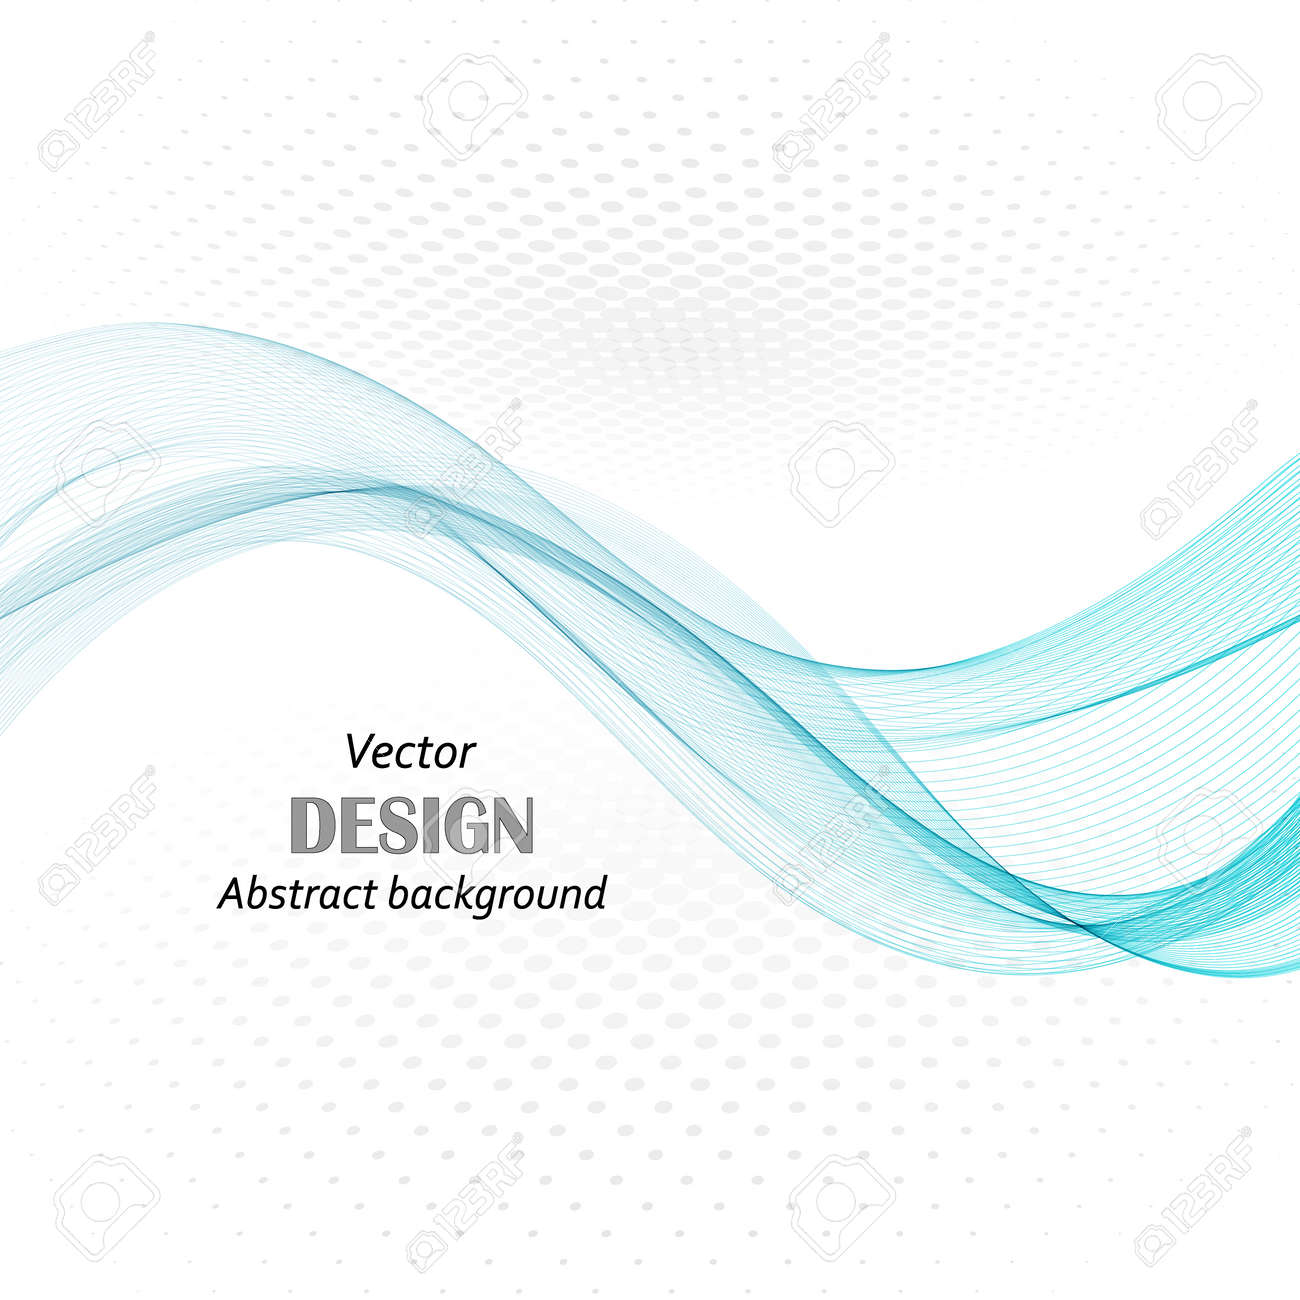 abstract blue business technology colorful wave vector background eps10 - 144098546